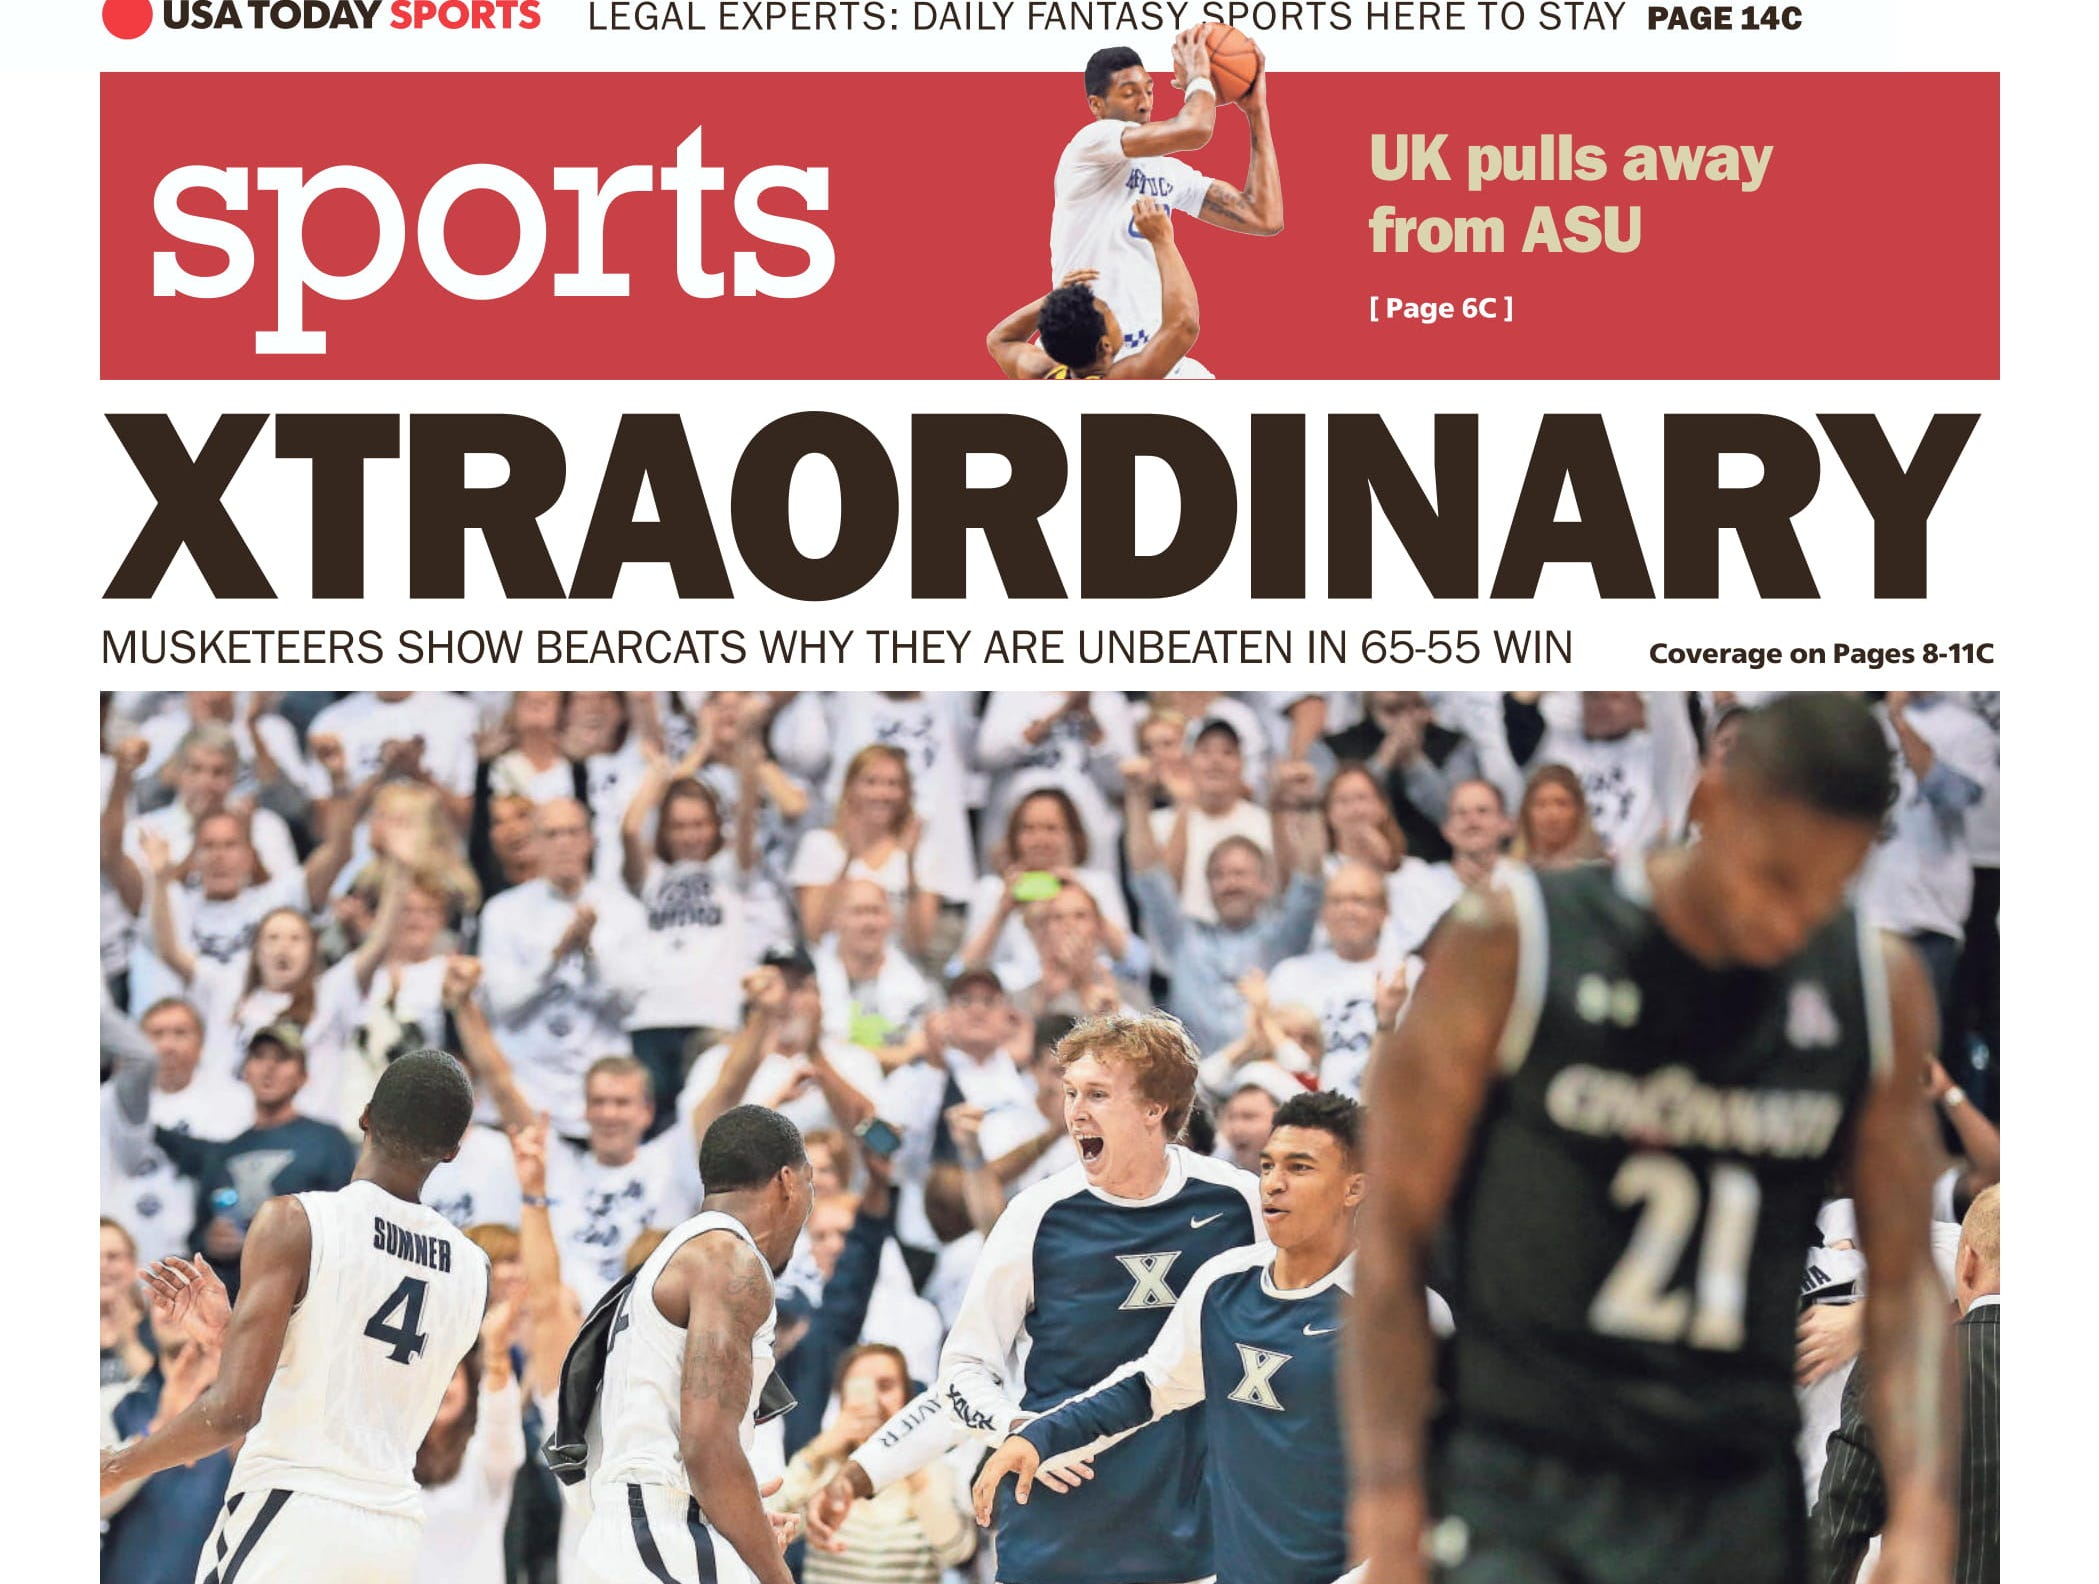 The 2015-16 season had both teams ranked in the Top 25 for the first time in over 20 years. Xavier came out on top, 65-55.